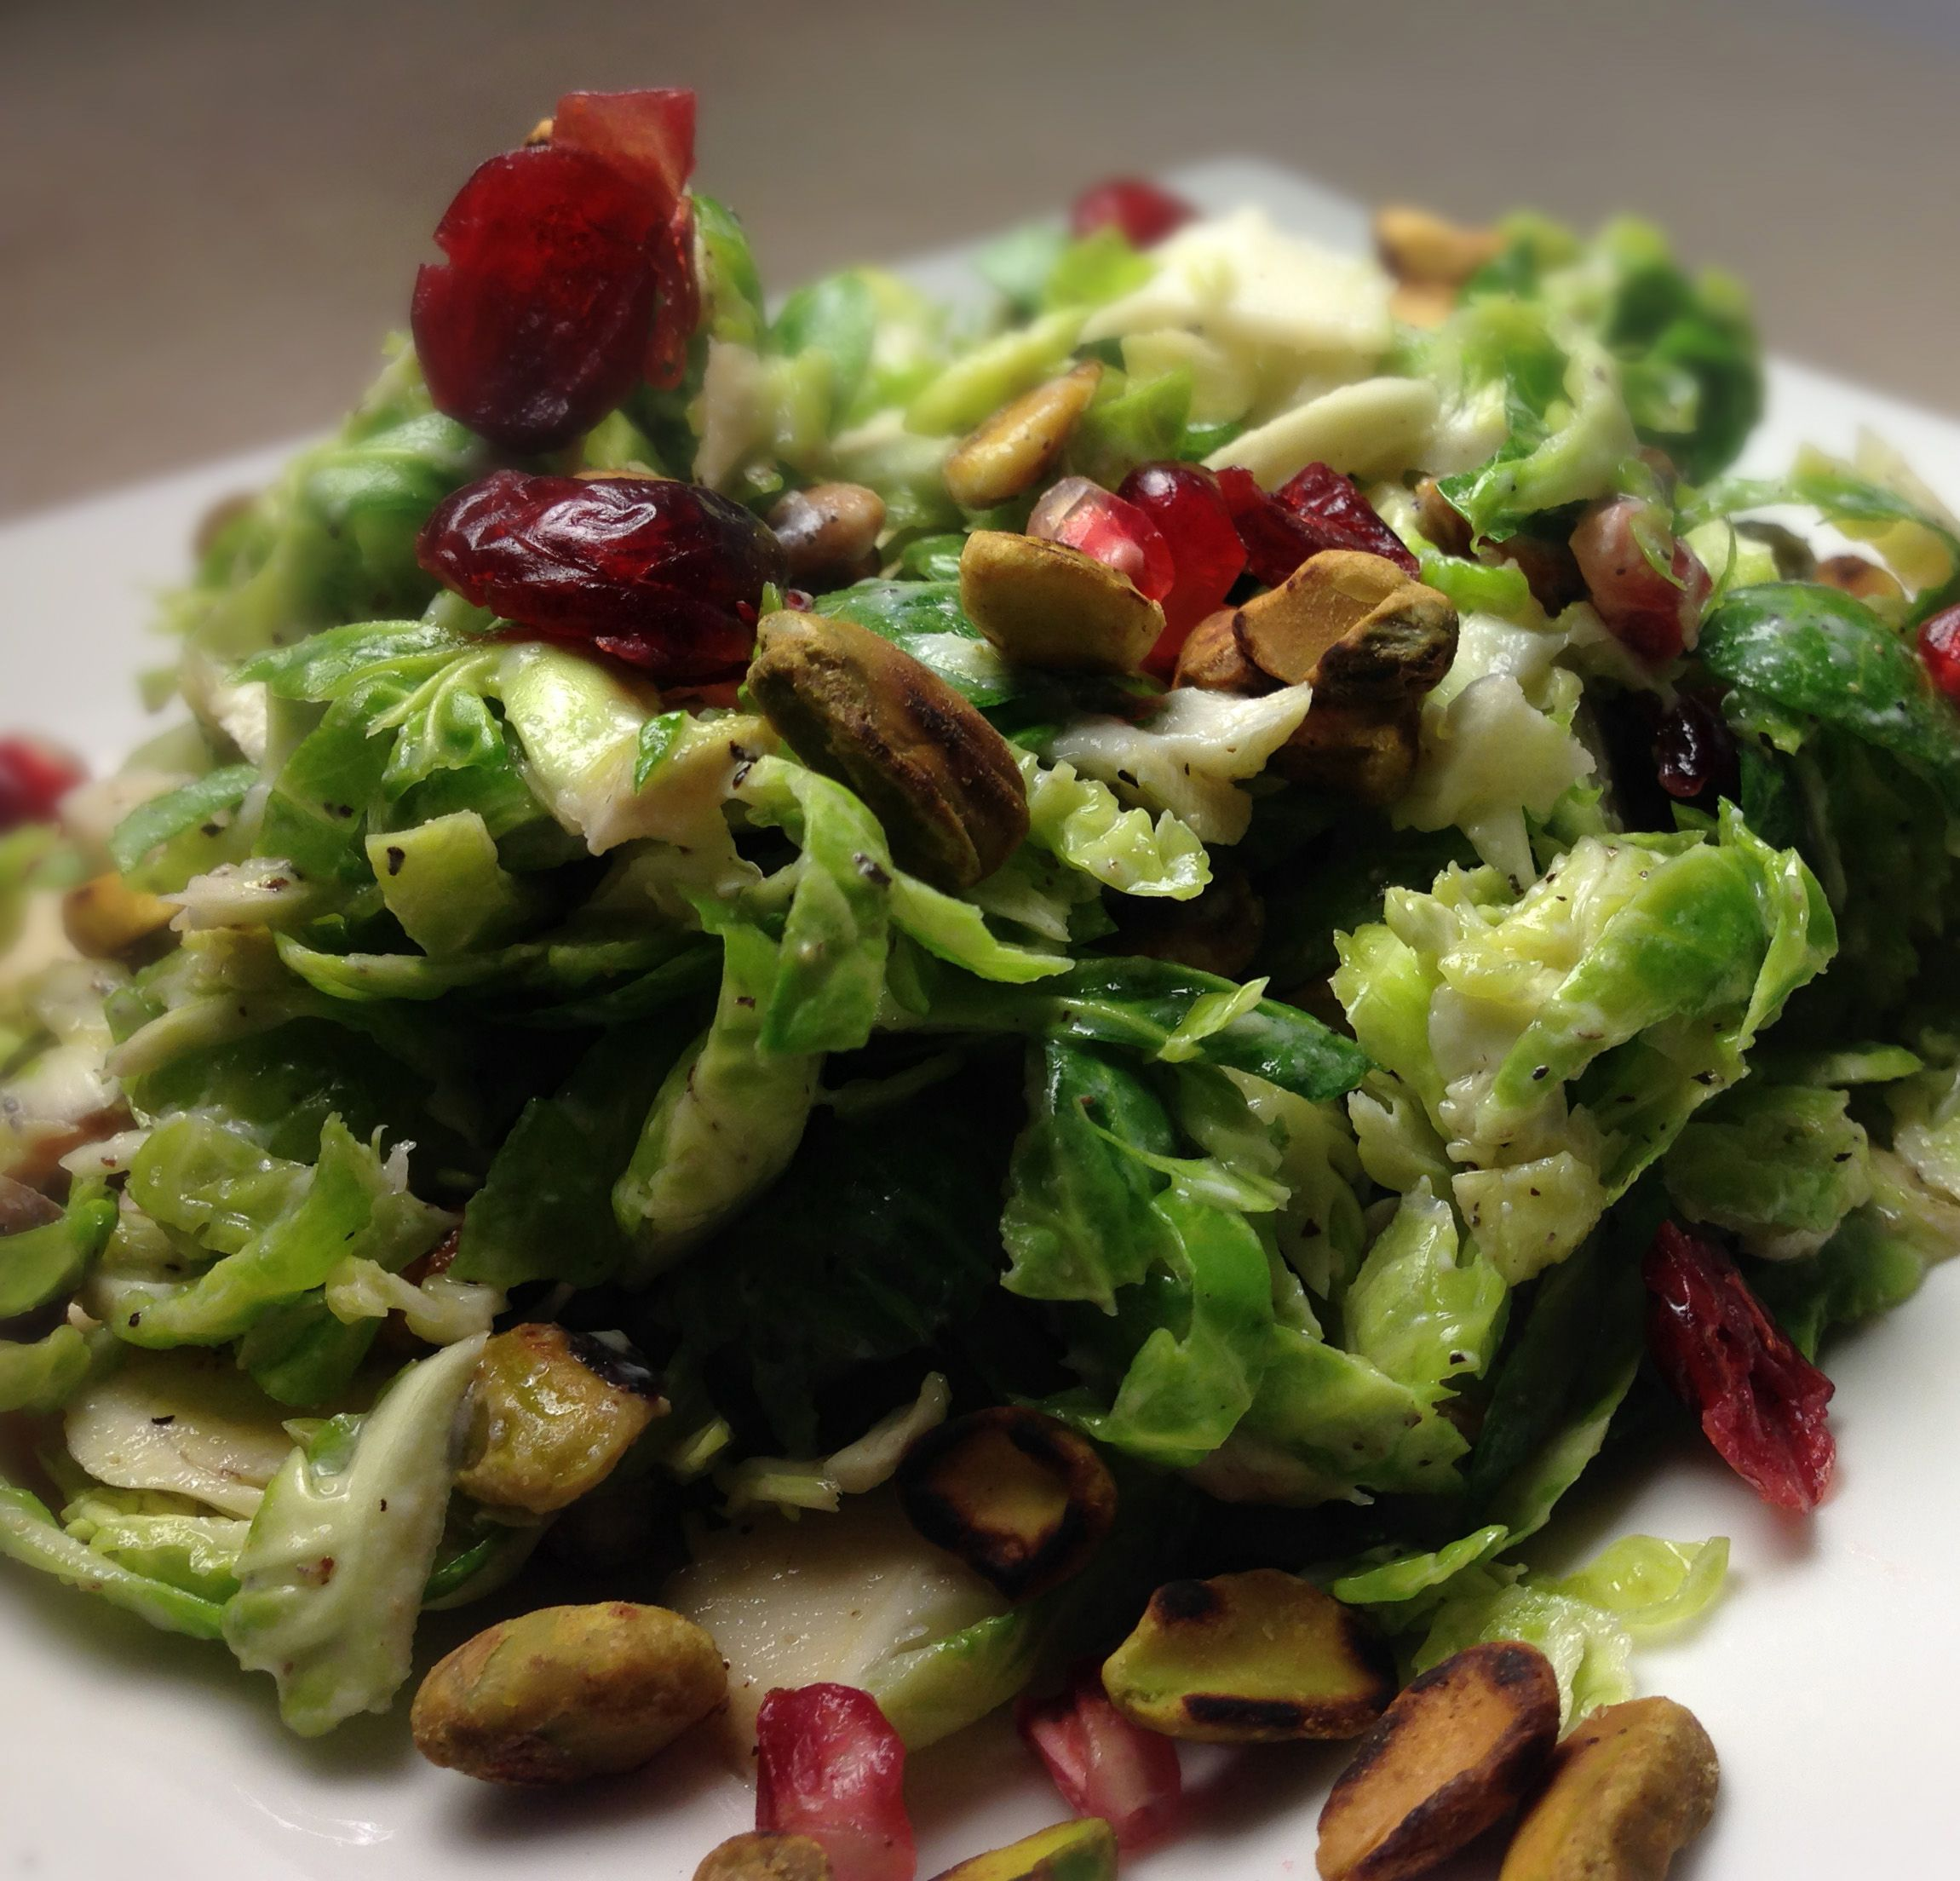 Brussels sprout salad with craisens and pistachios